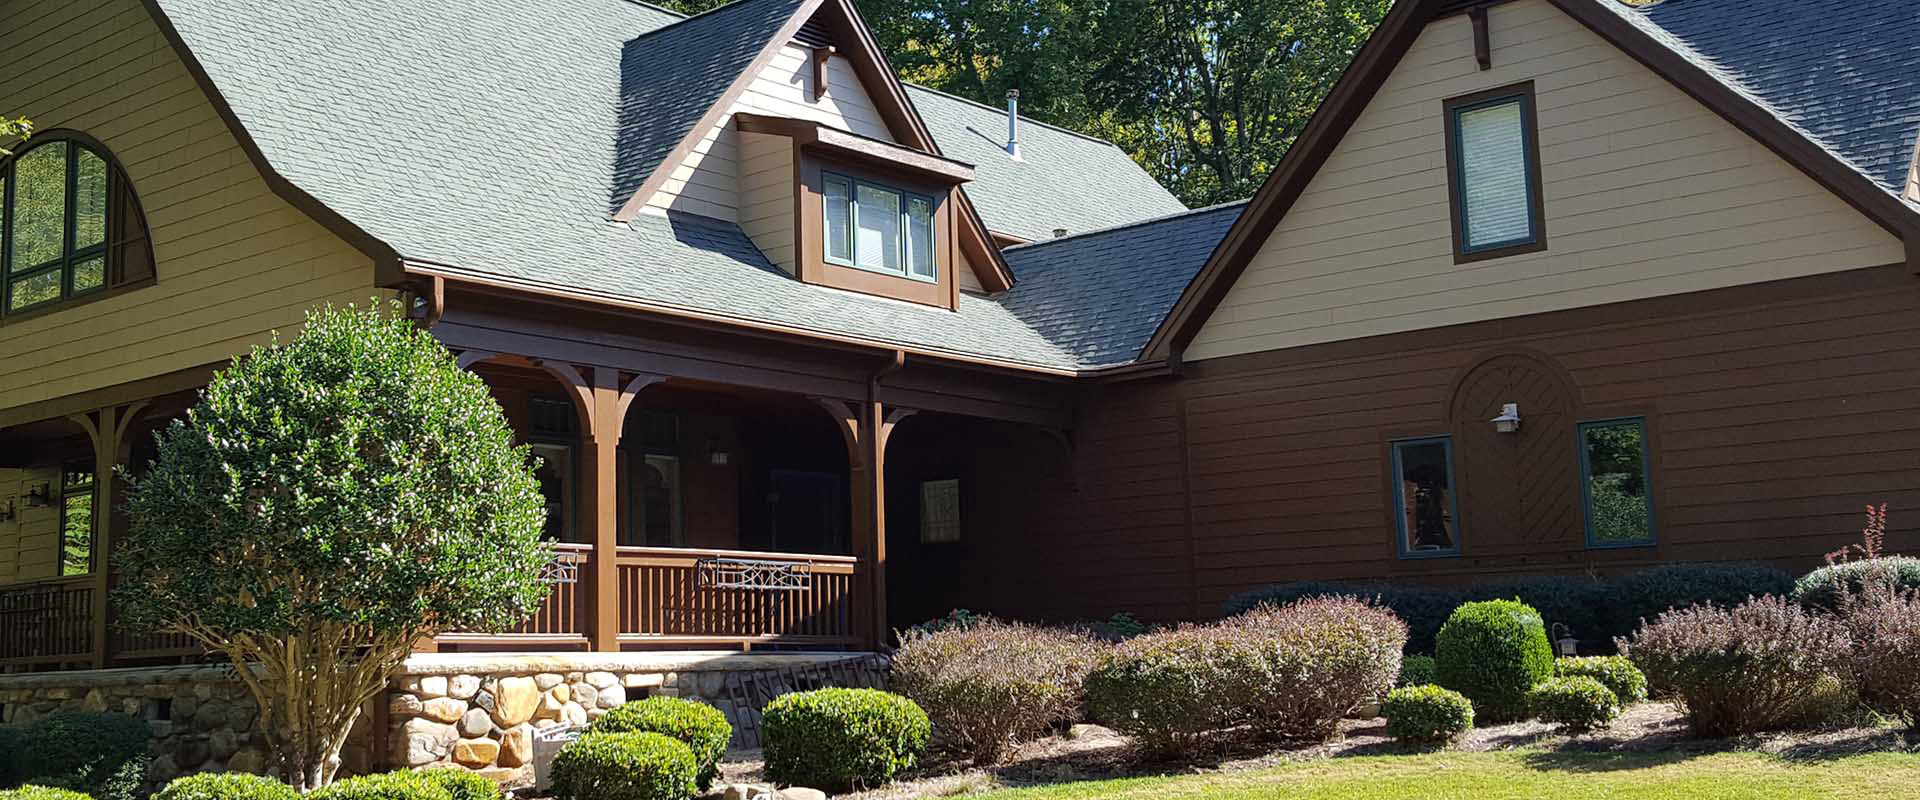 Raleigh exterior painting raleigh painting contractor - Exterior house painting contractors ...